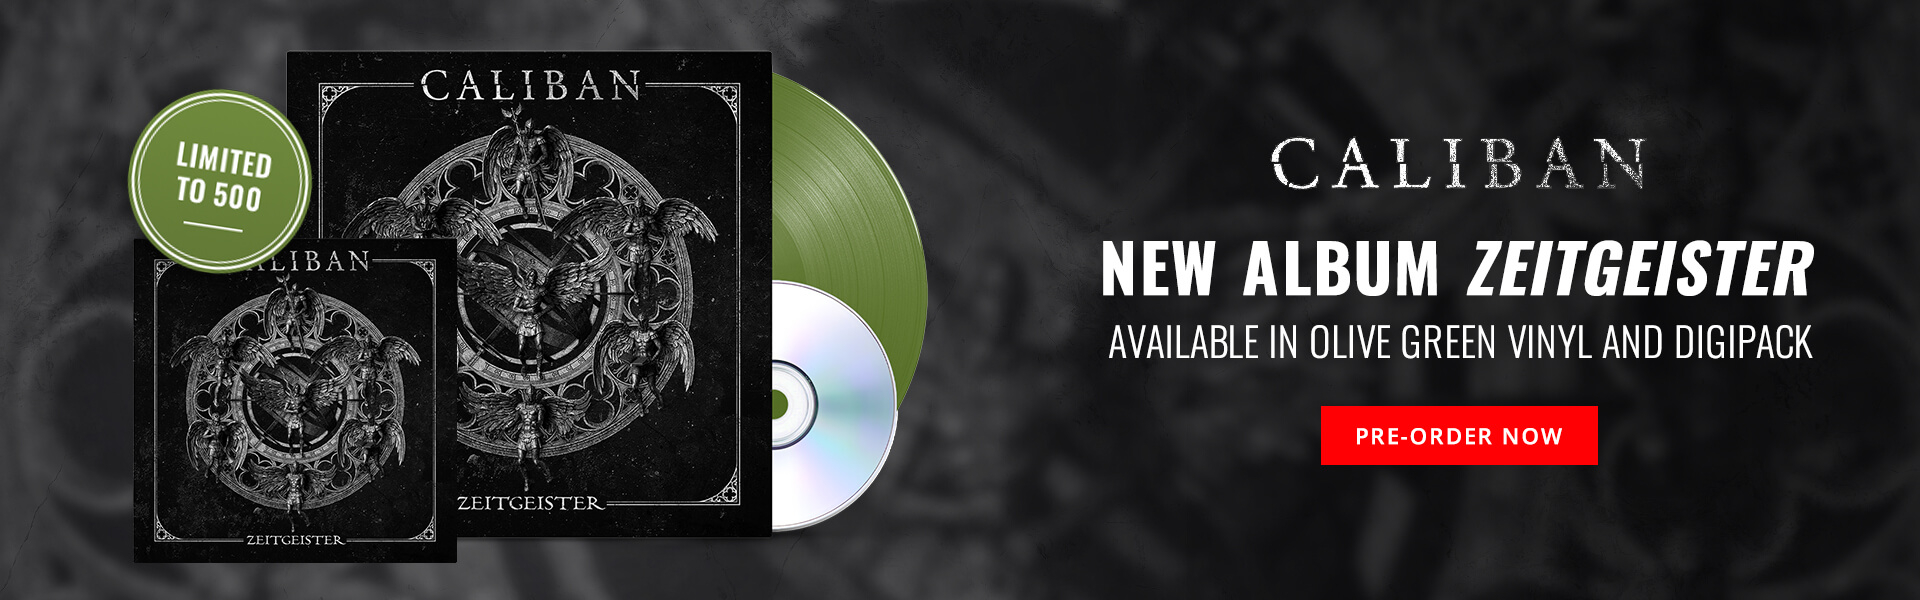 Caliban's new album Zeitgeister available in olive green vinyl and digipak. Pre-order Now. May 14, 2021 release.